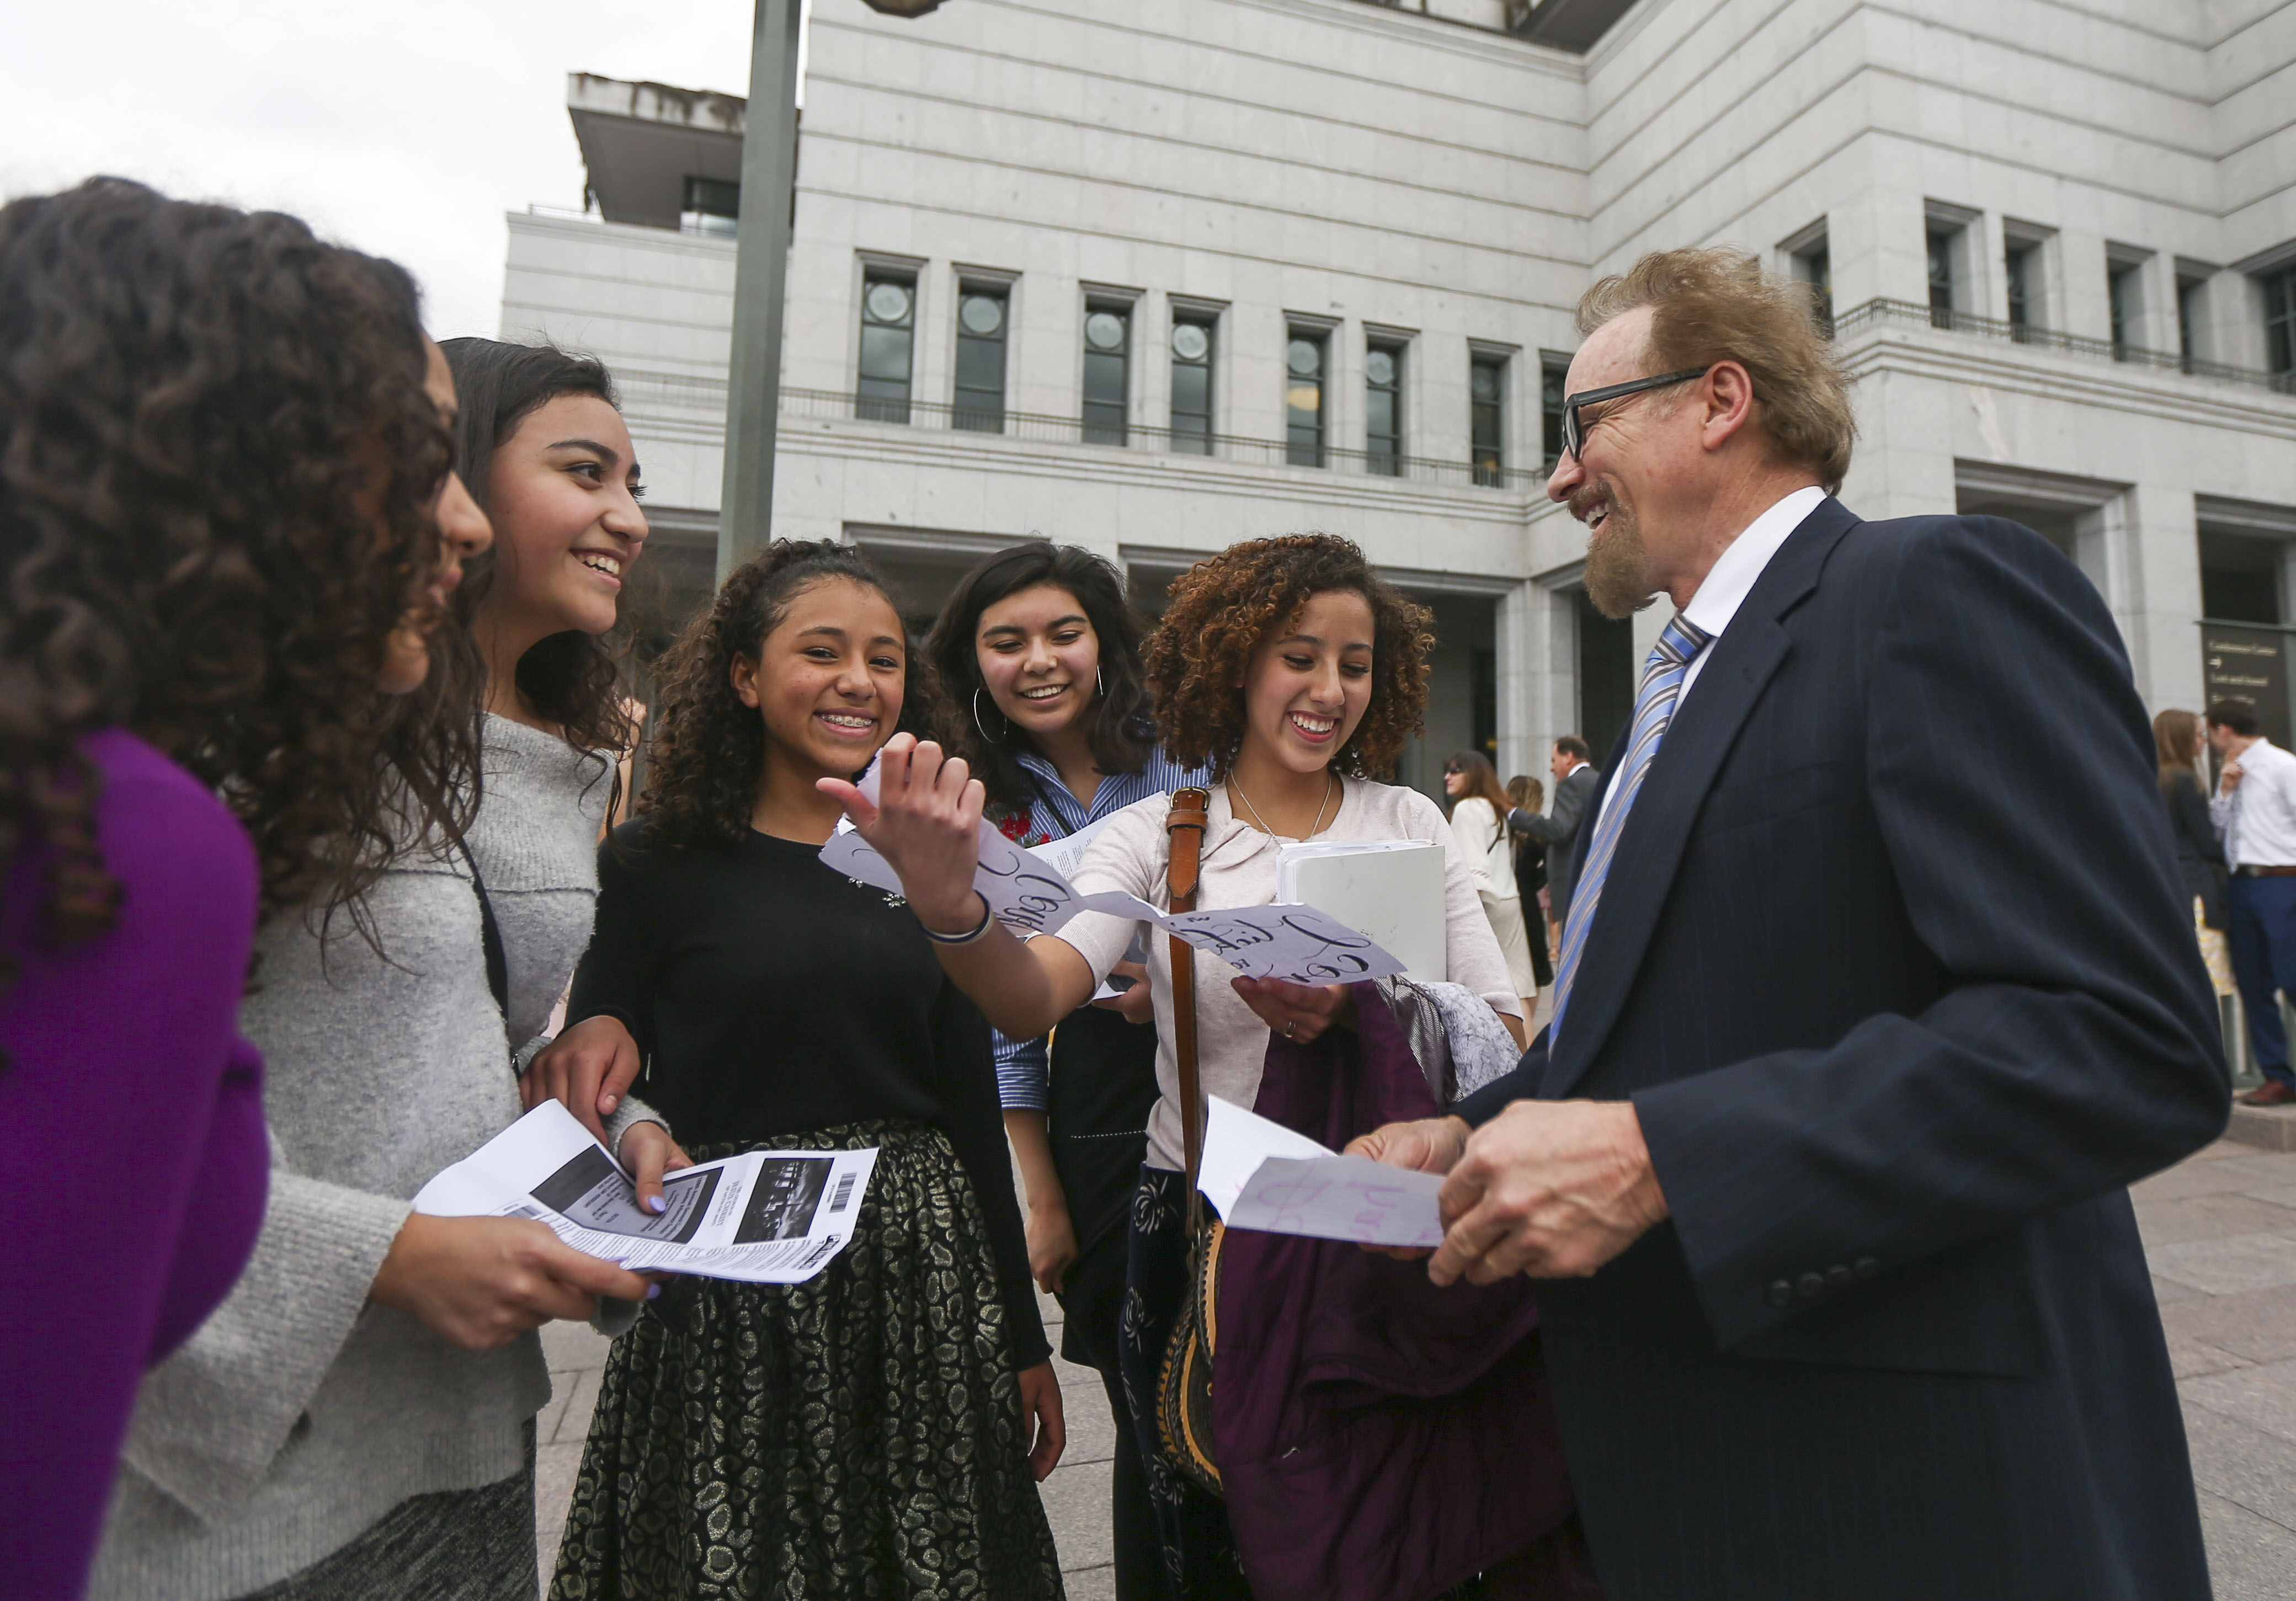 Members of The Church of Jesus Christ of Latter-day Saints celebrate receiving tickets to general conference in April 2019.